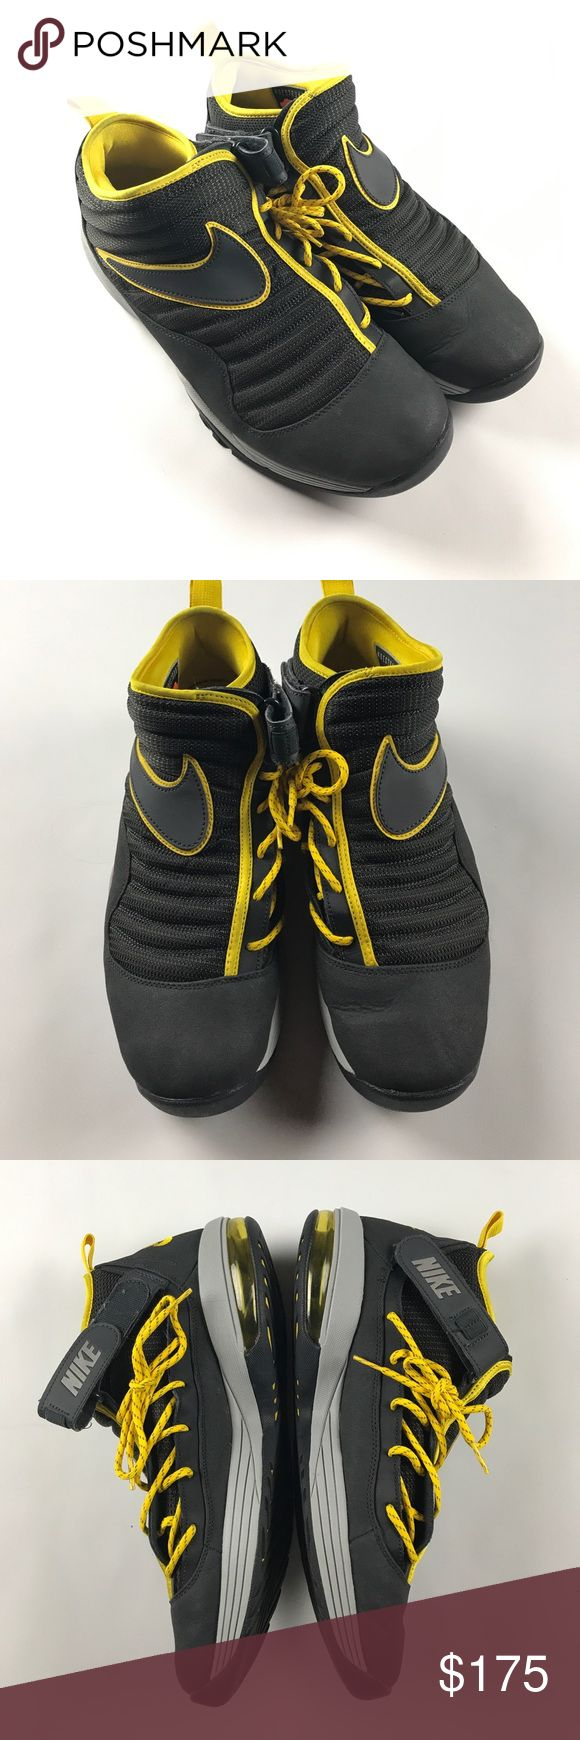 Vintage Nike 13 Ndestrukt Dennis Rodman Shoes In excellent condition Nike Shoes Sneakers